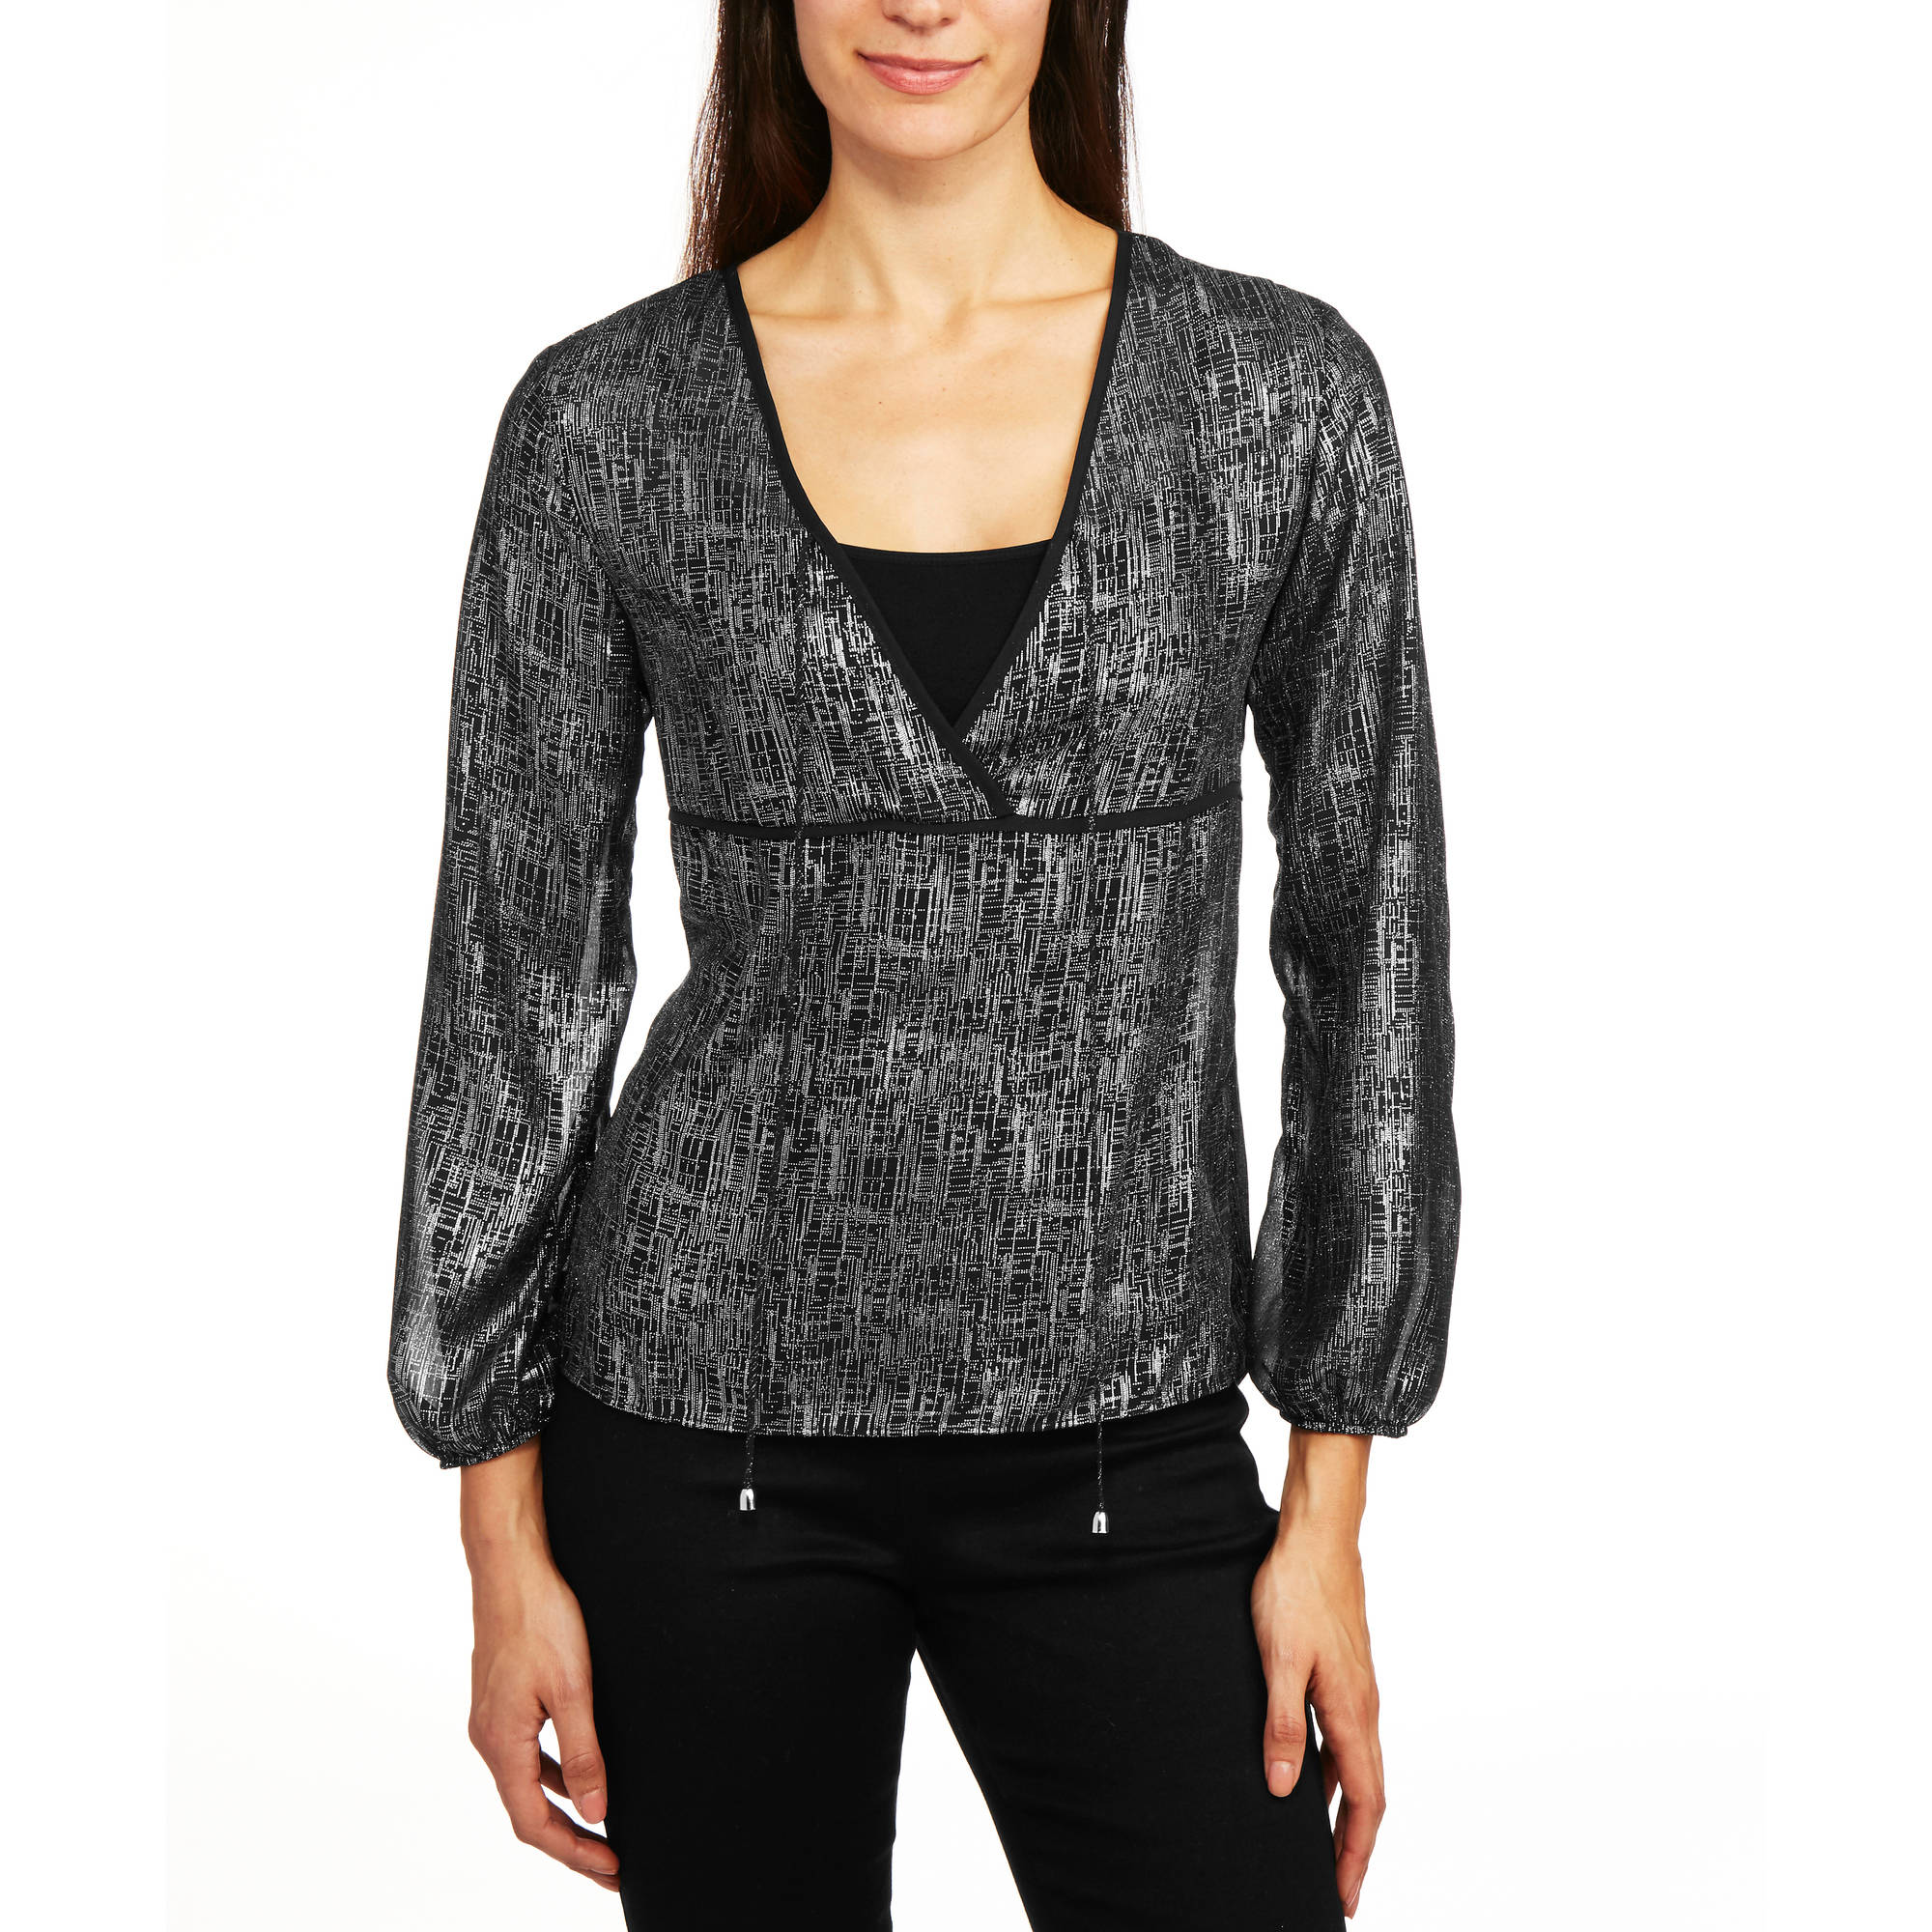 Glamour & Co. Women's Metallic Print Tie Front Blouse